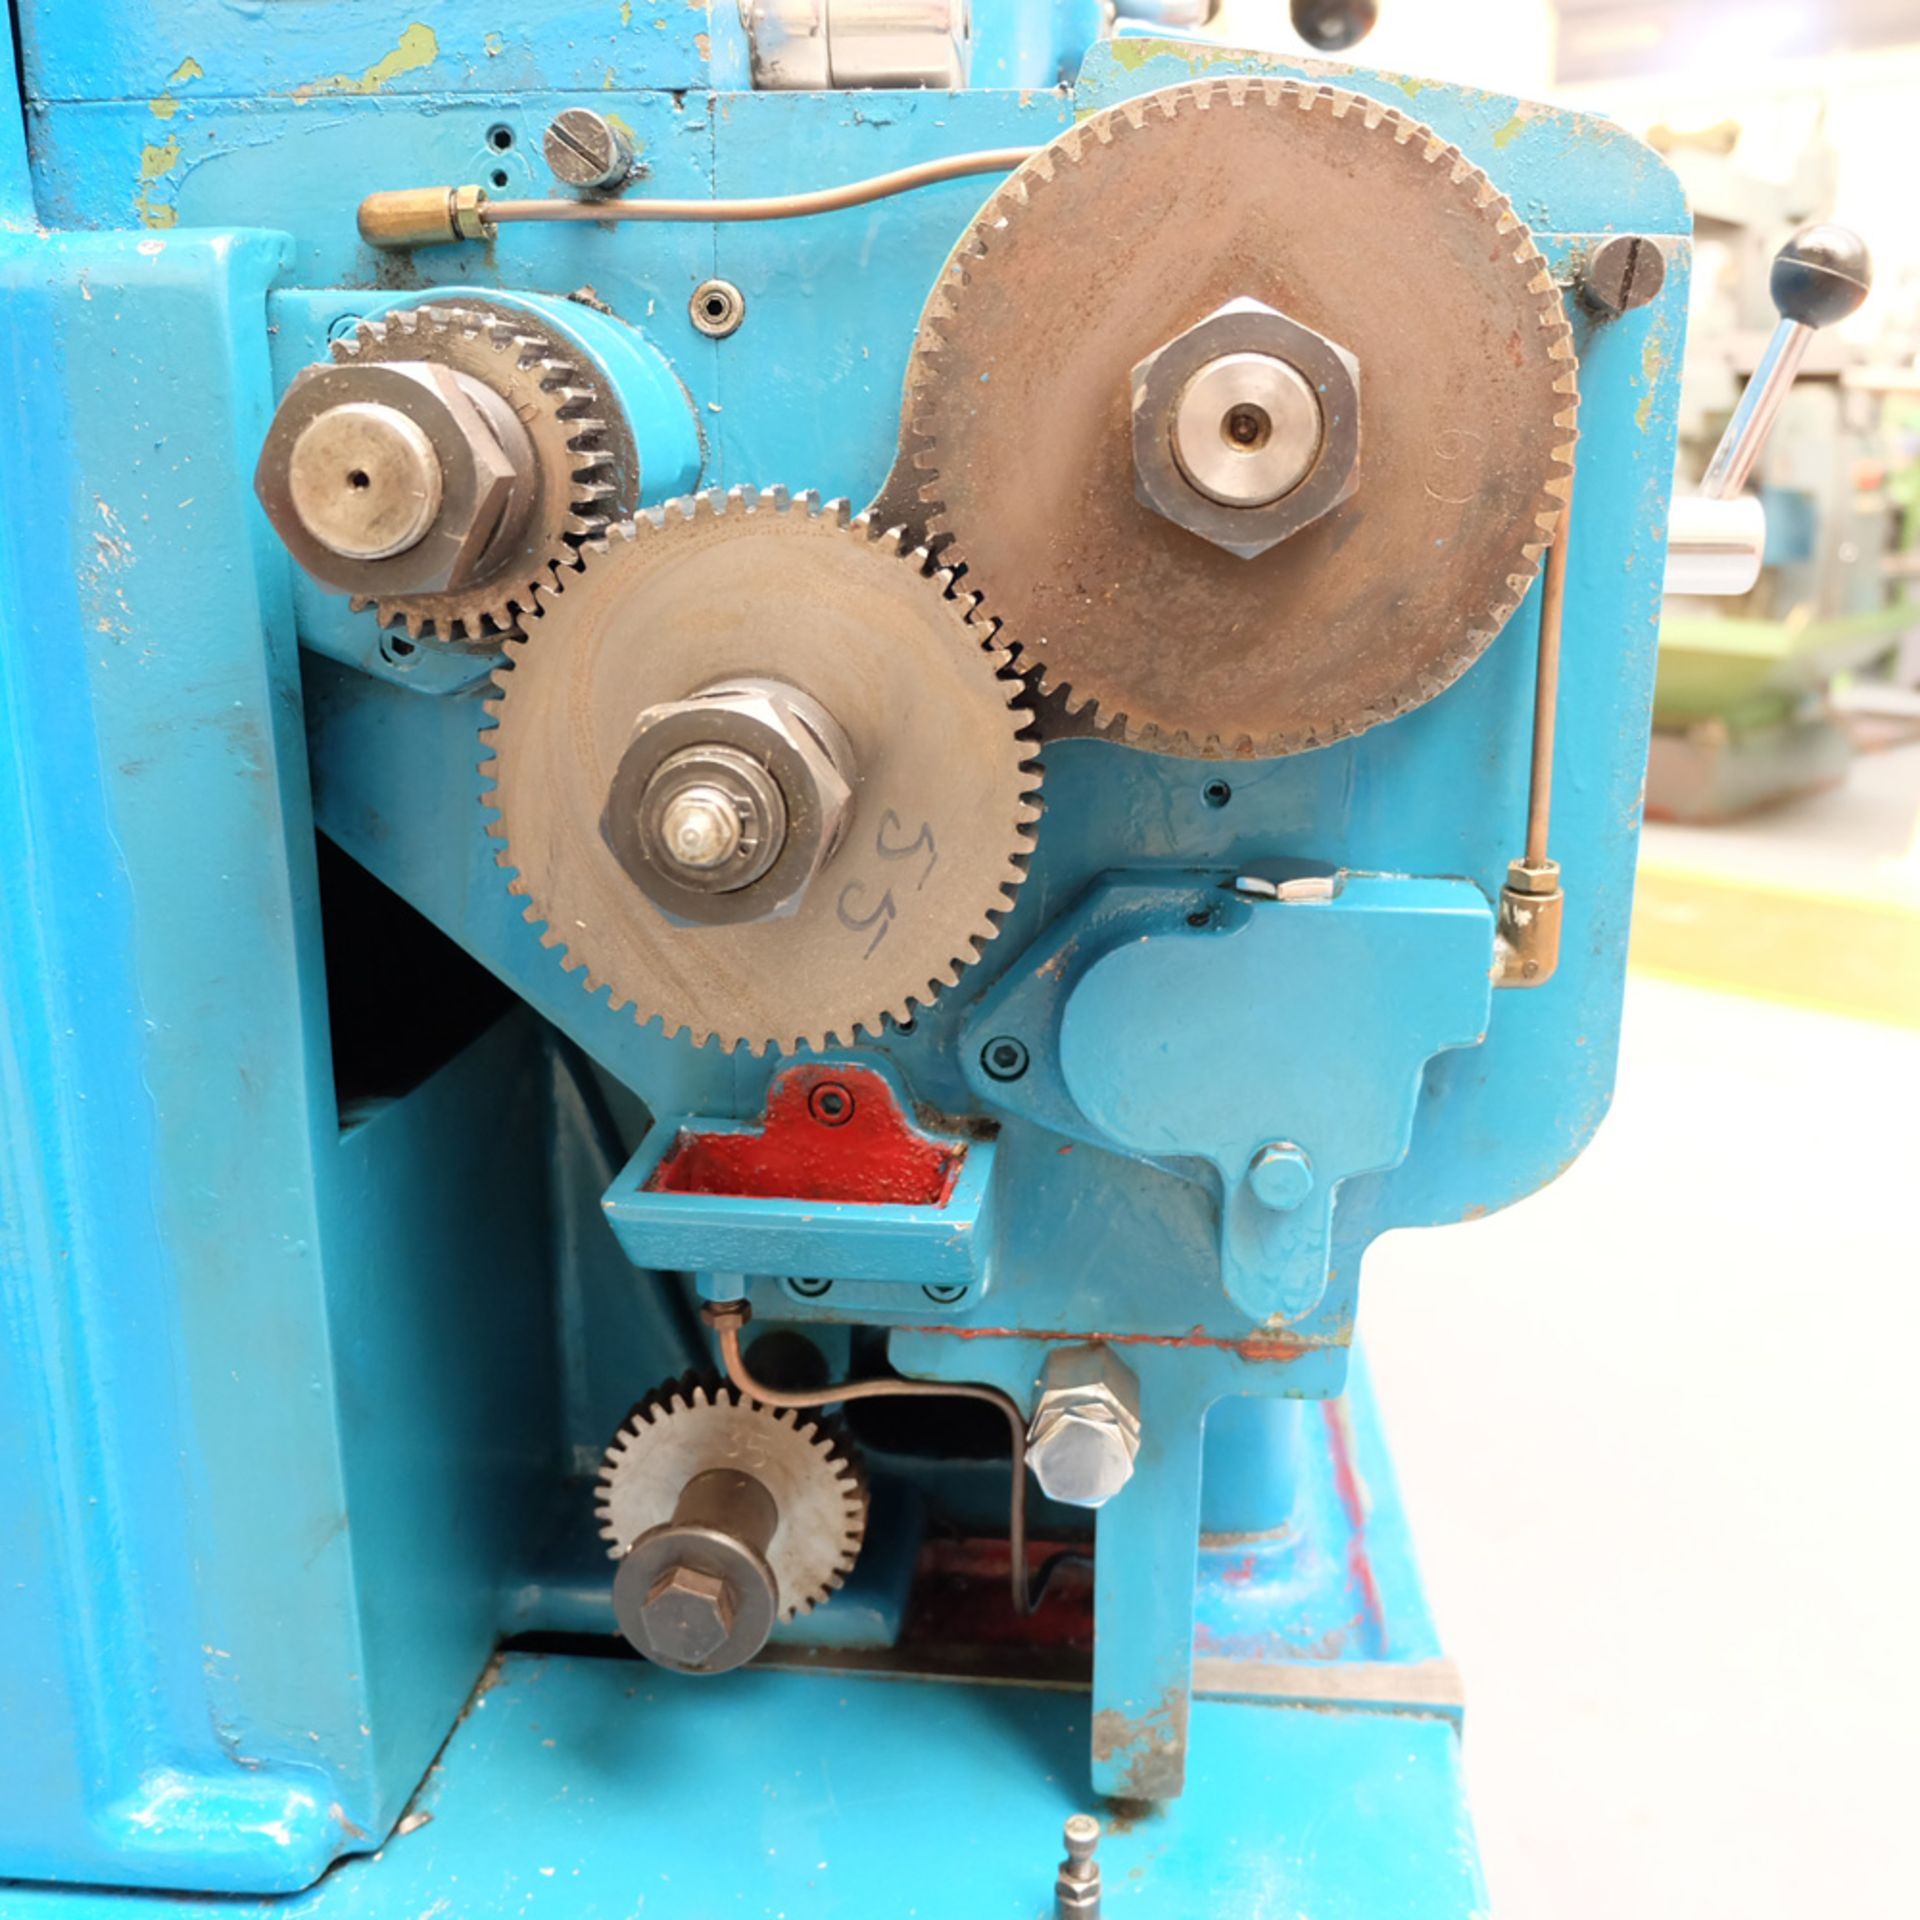 Dean Smith & Grace Type 13-1 Tool Room Centre Lathe. - Image 12 of 13